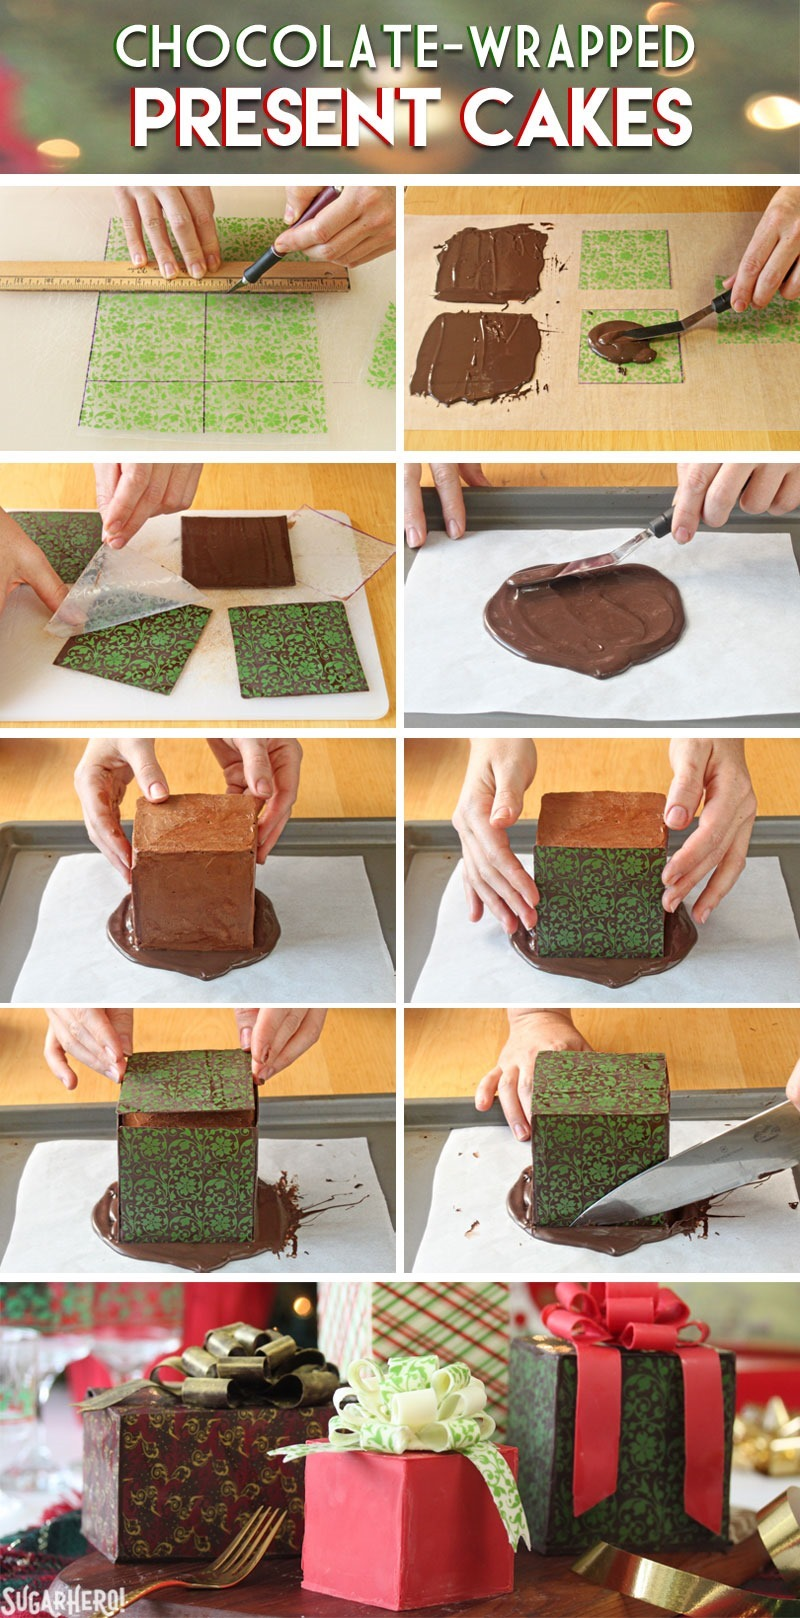 How to Make Chocolate-Wrapped Present Cakes | From SugarHero.com